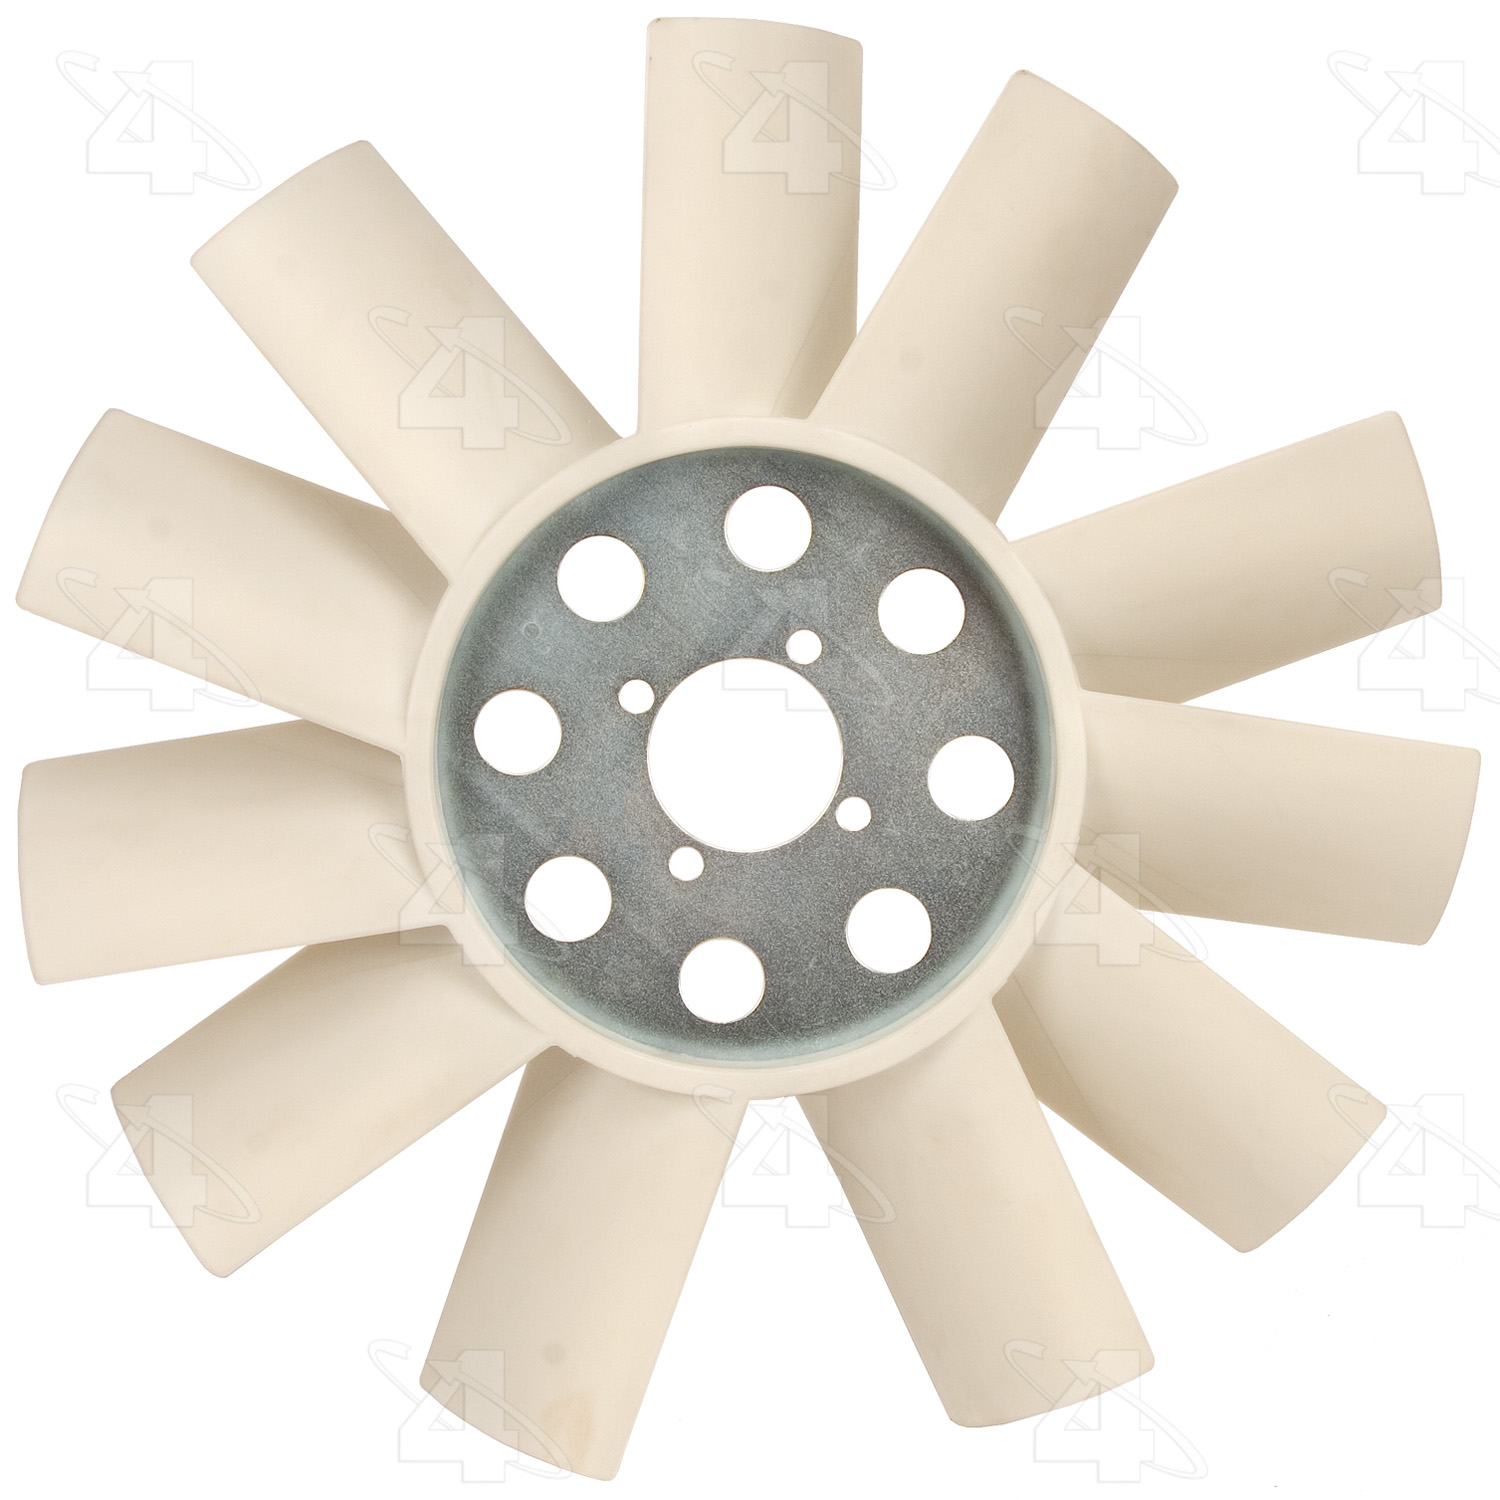 Four Seasons 36893 Engine Cooling Fan Blade Fits 1996-2003 Chevrolet S10